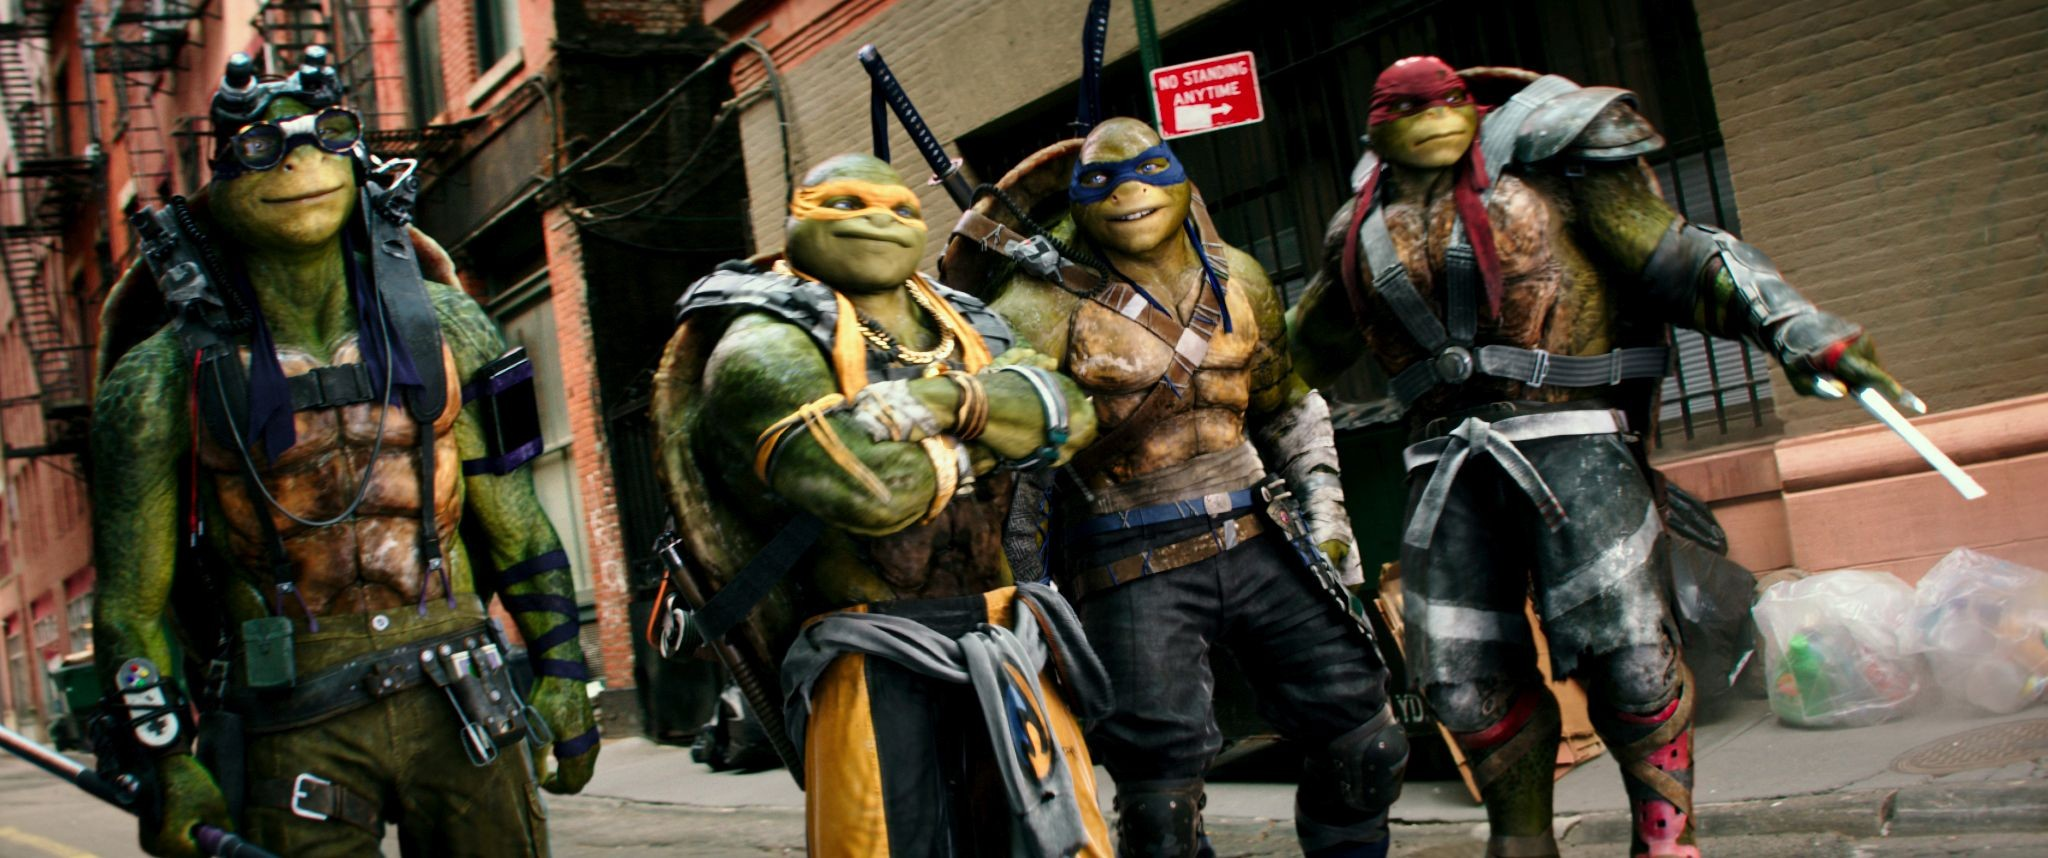 Tmnt Out Of The Shadows Spoiler Review Teenage Mutant Ninja